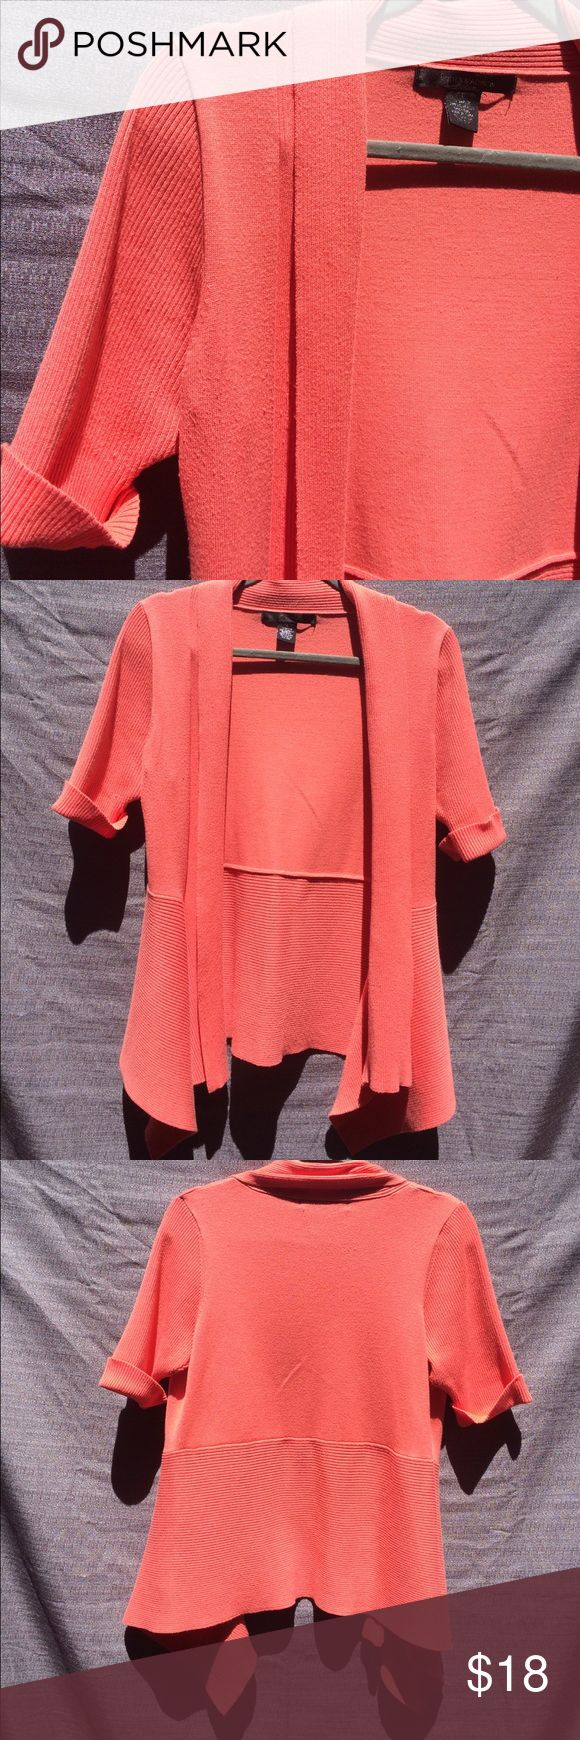 89th & Madison Coral Cardigan 89th & Madison Coral Cardigan Size Large rayon polyester blend 89th & Madison Sweaters Cardigans